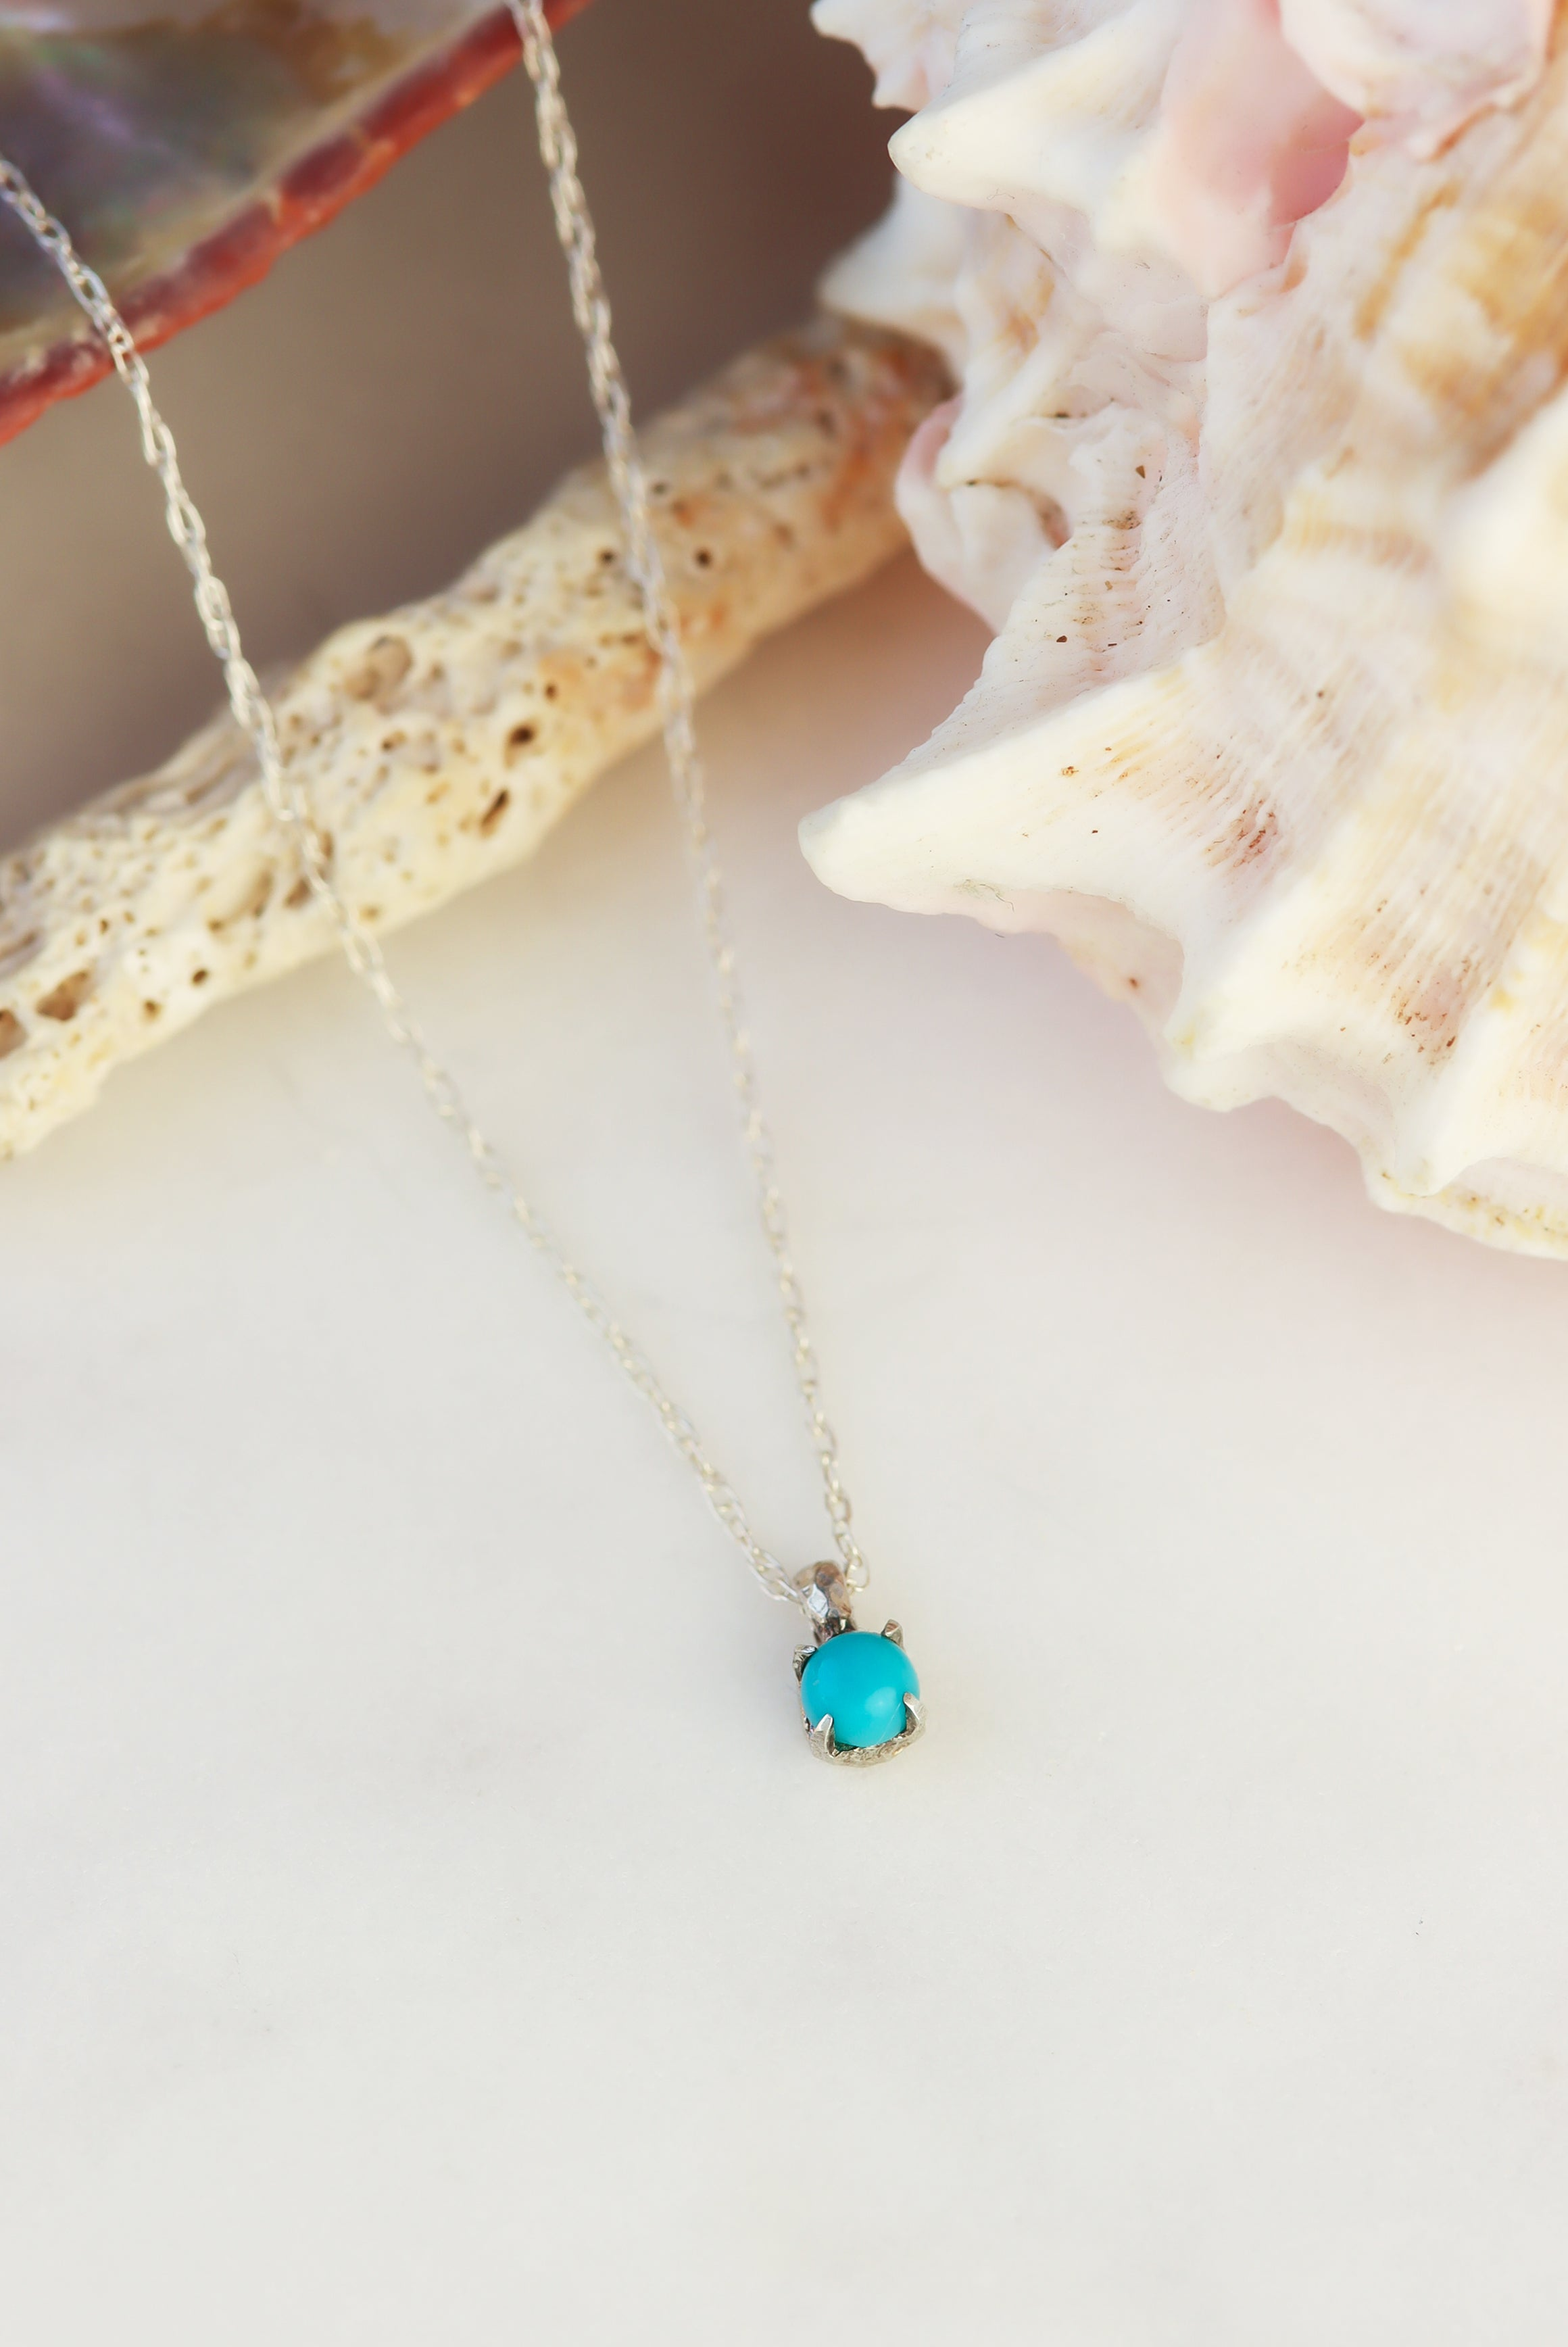 3-Must-Have-Necklaces-For-Your-Next-Beach-Visit-turquoise-sterling-silver-necklace